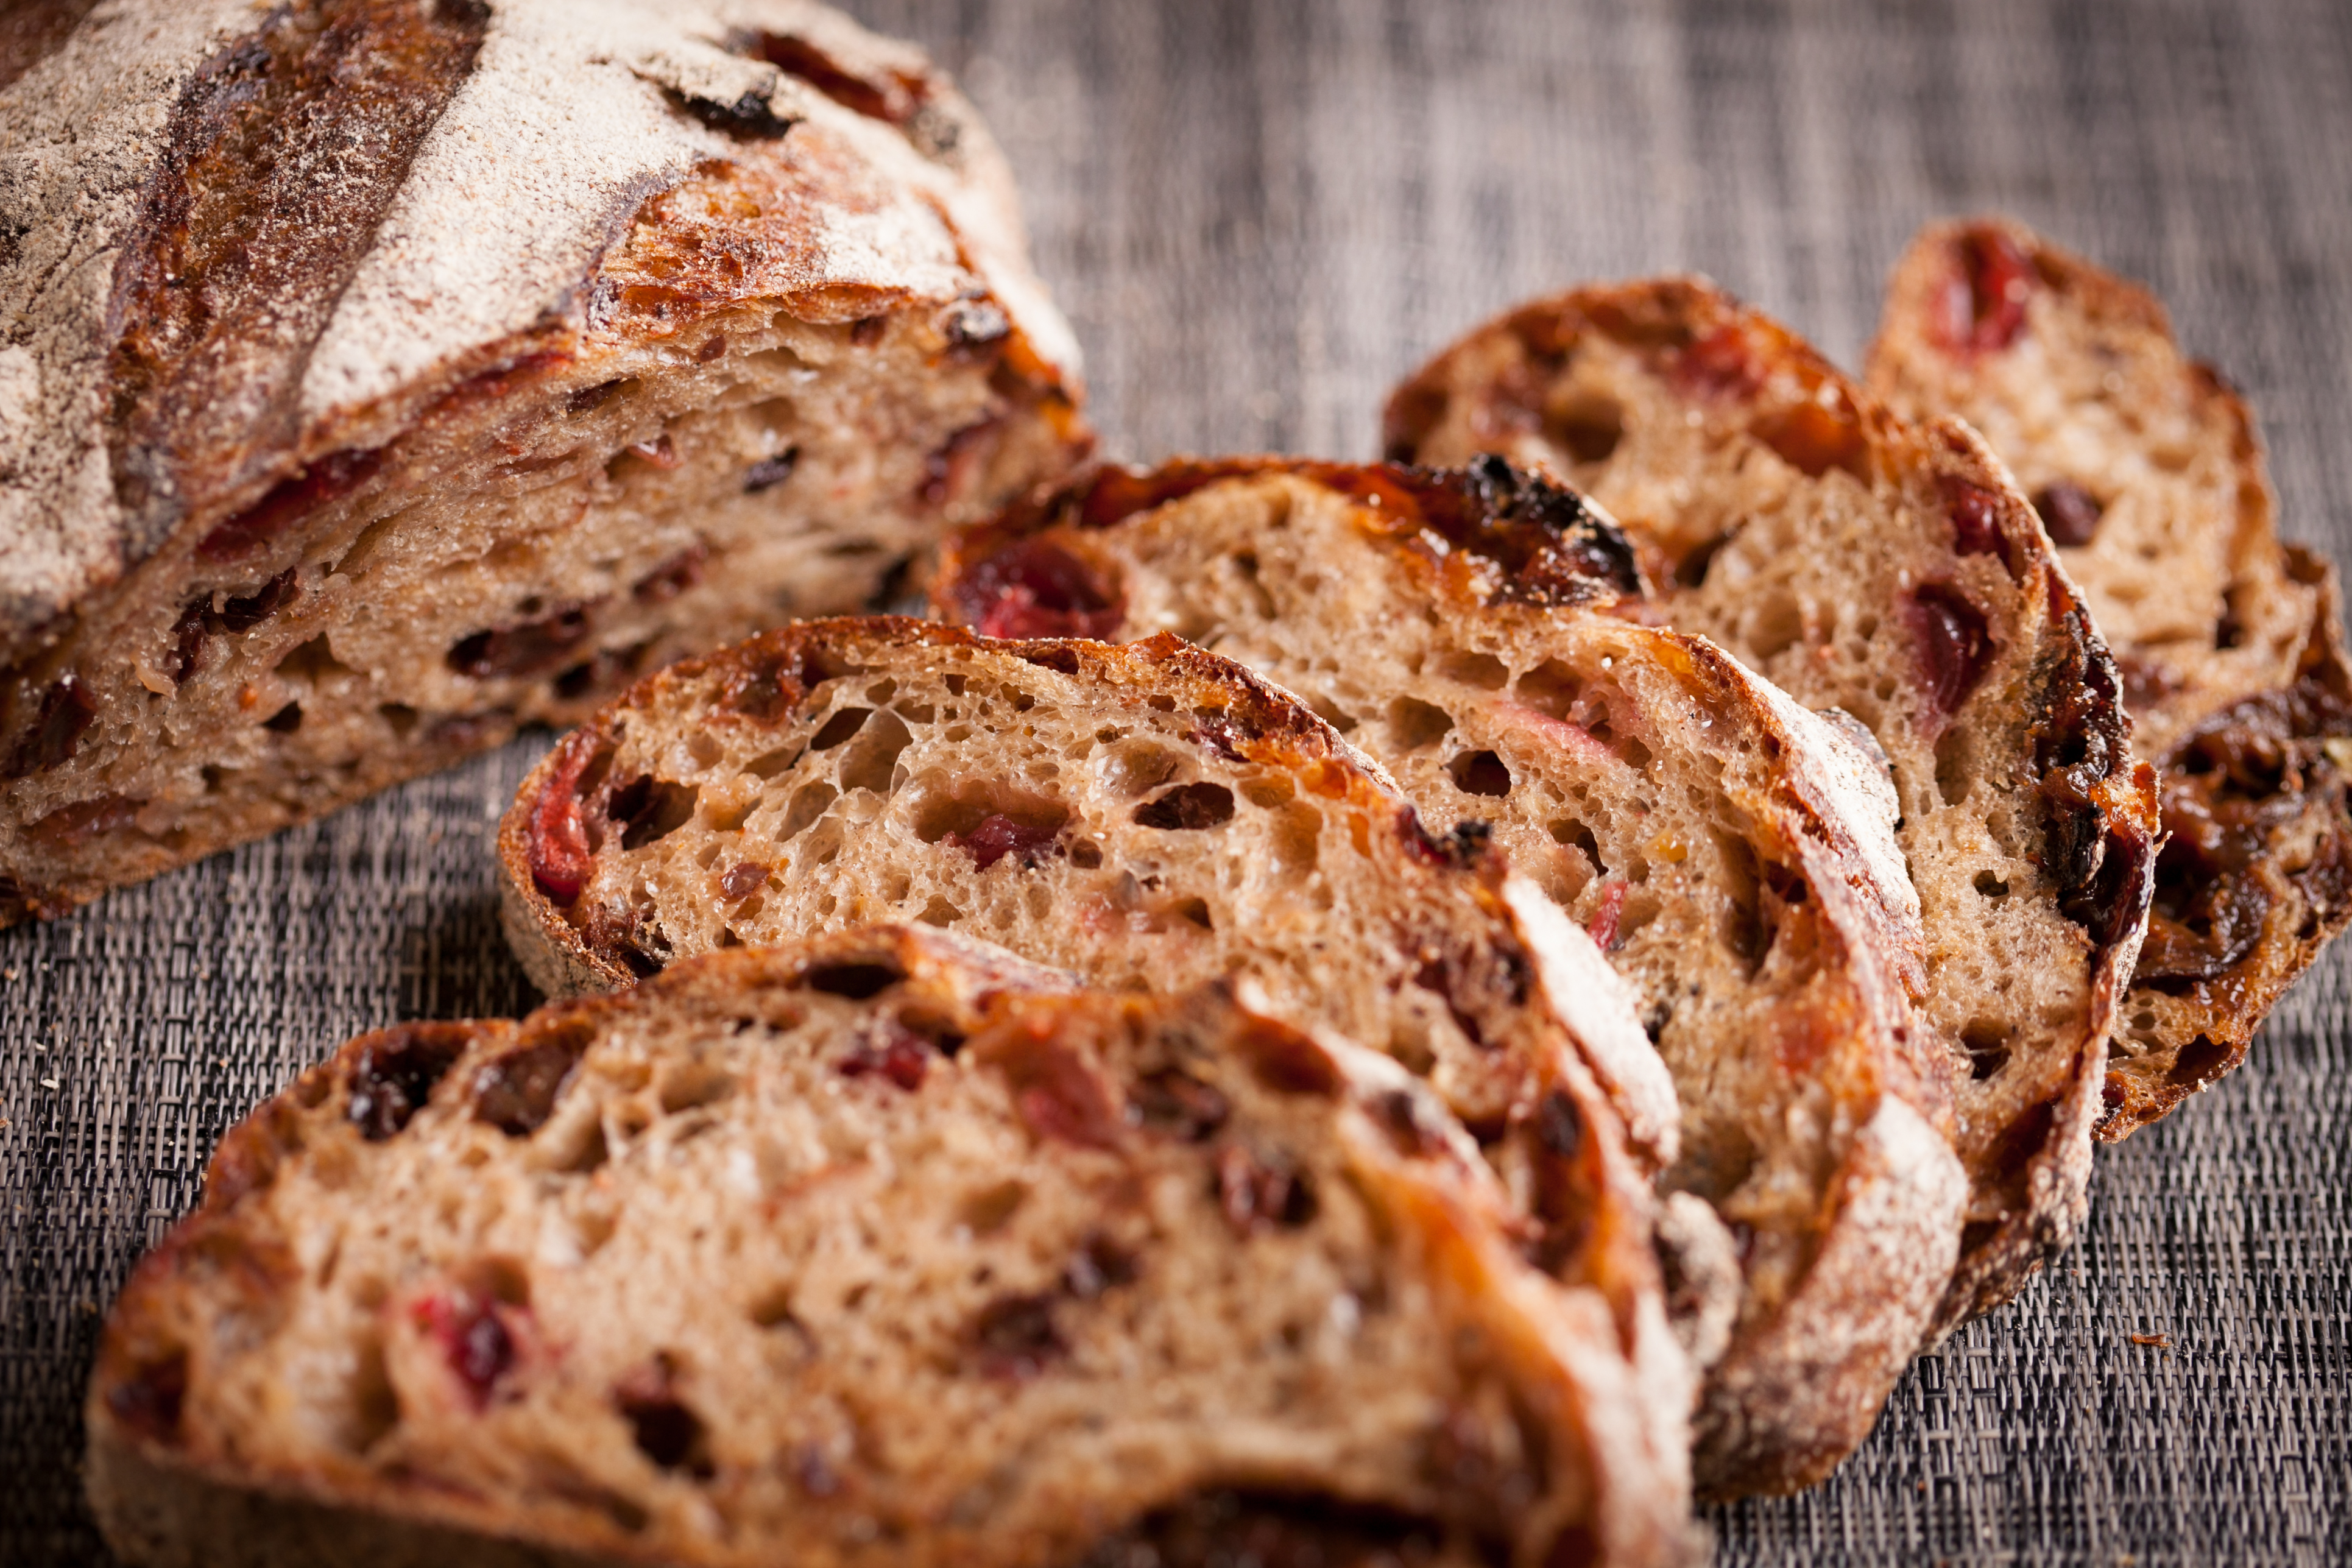 Recommended hard bread: Levain